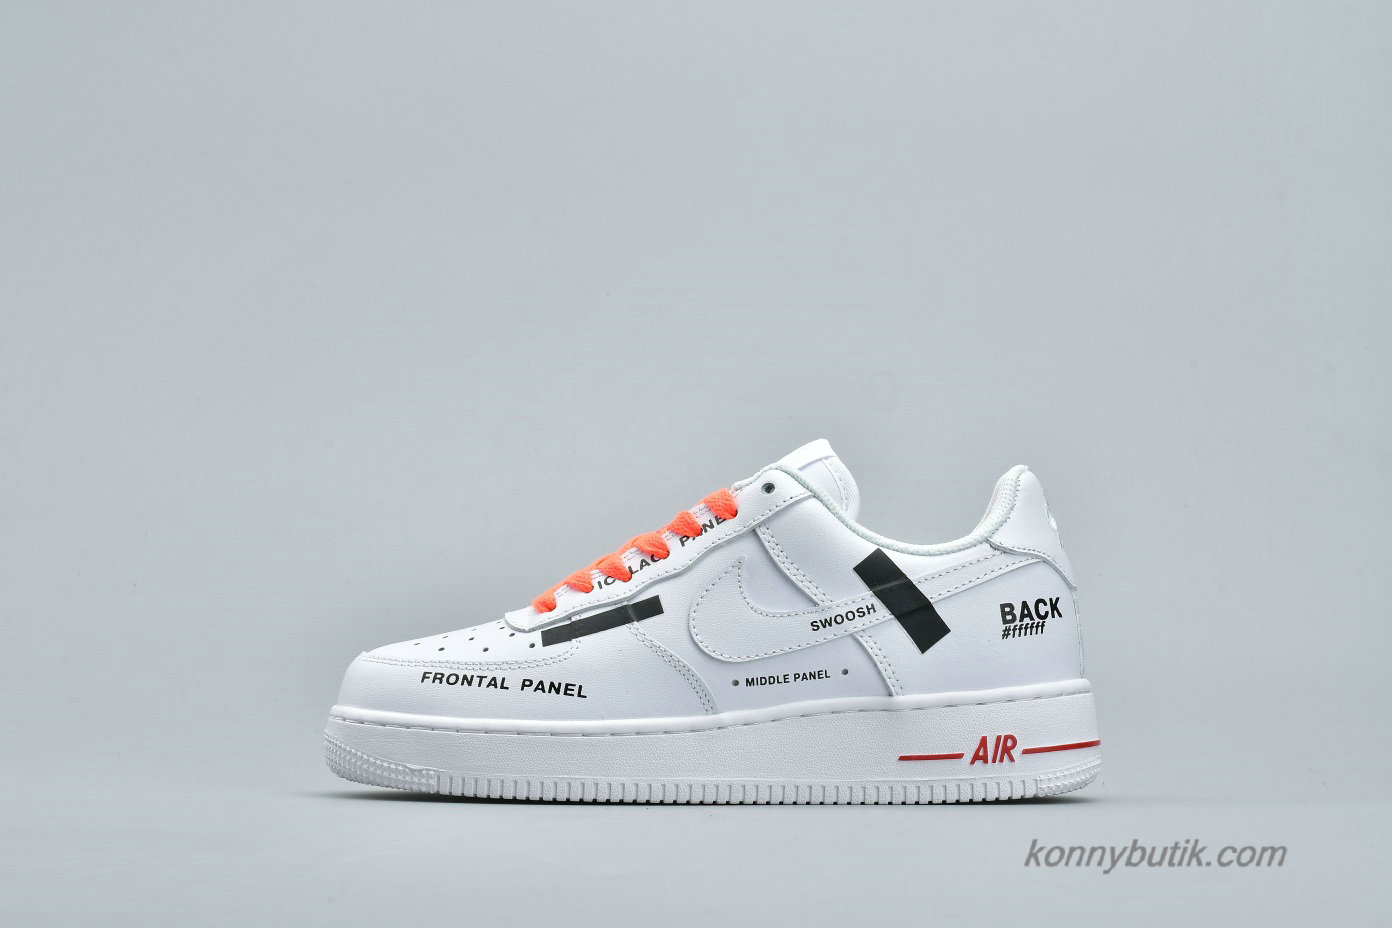 Nike Air Force 1 Low Unisex Sko Hvid / Sort / Orange (AR7720-101)